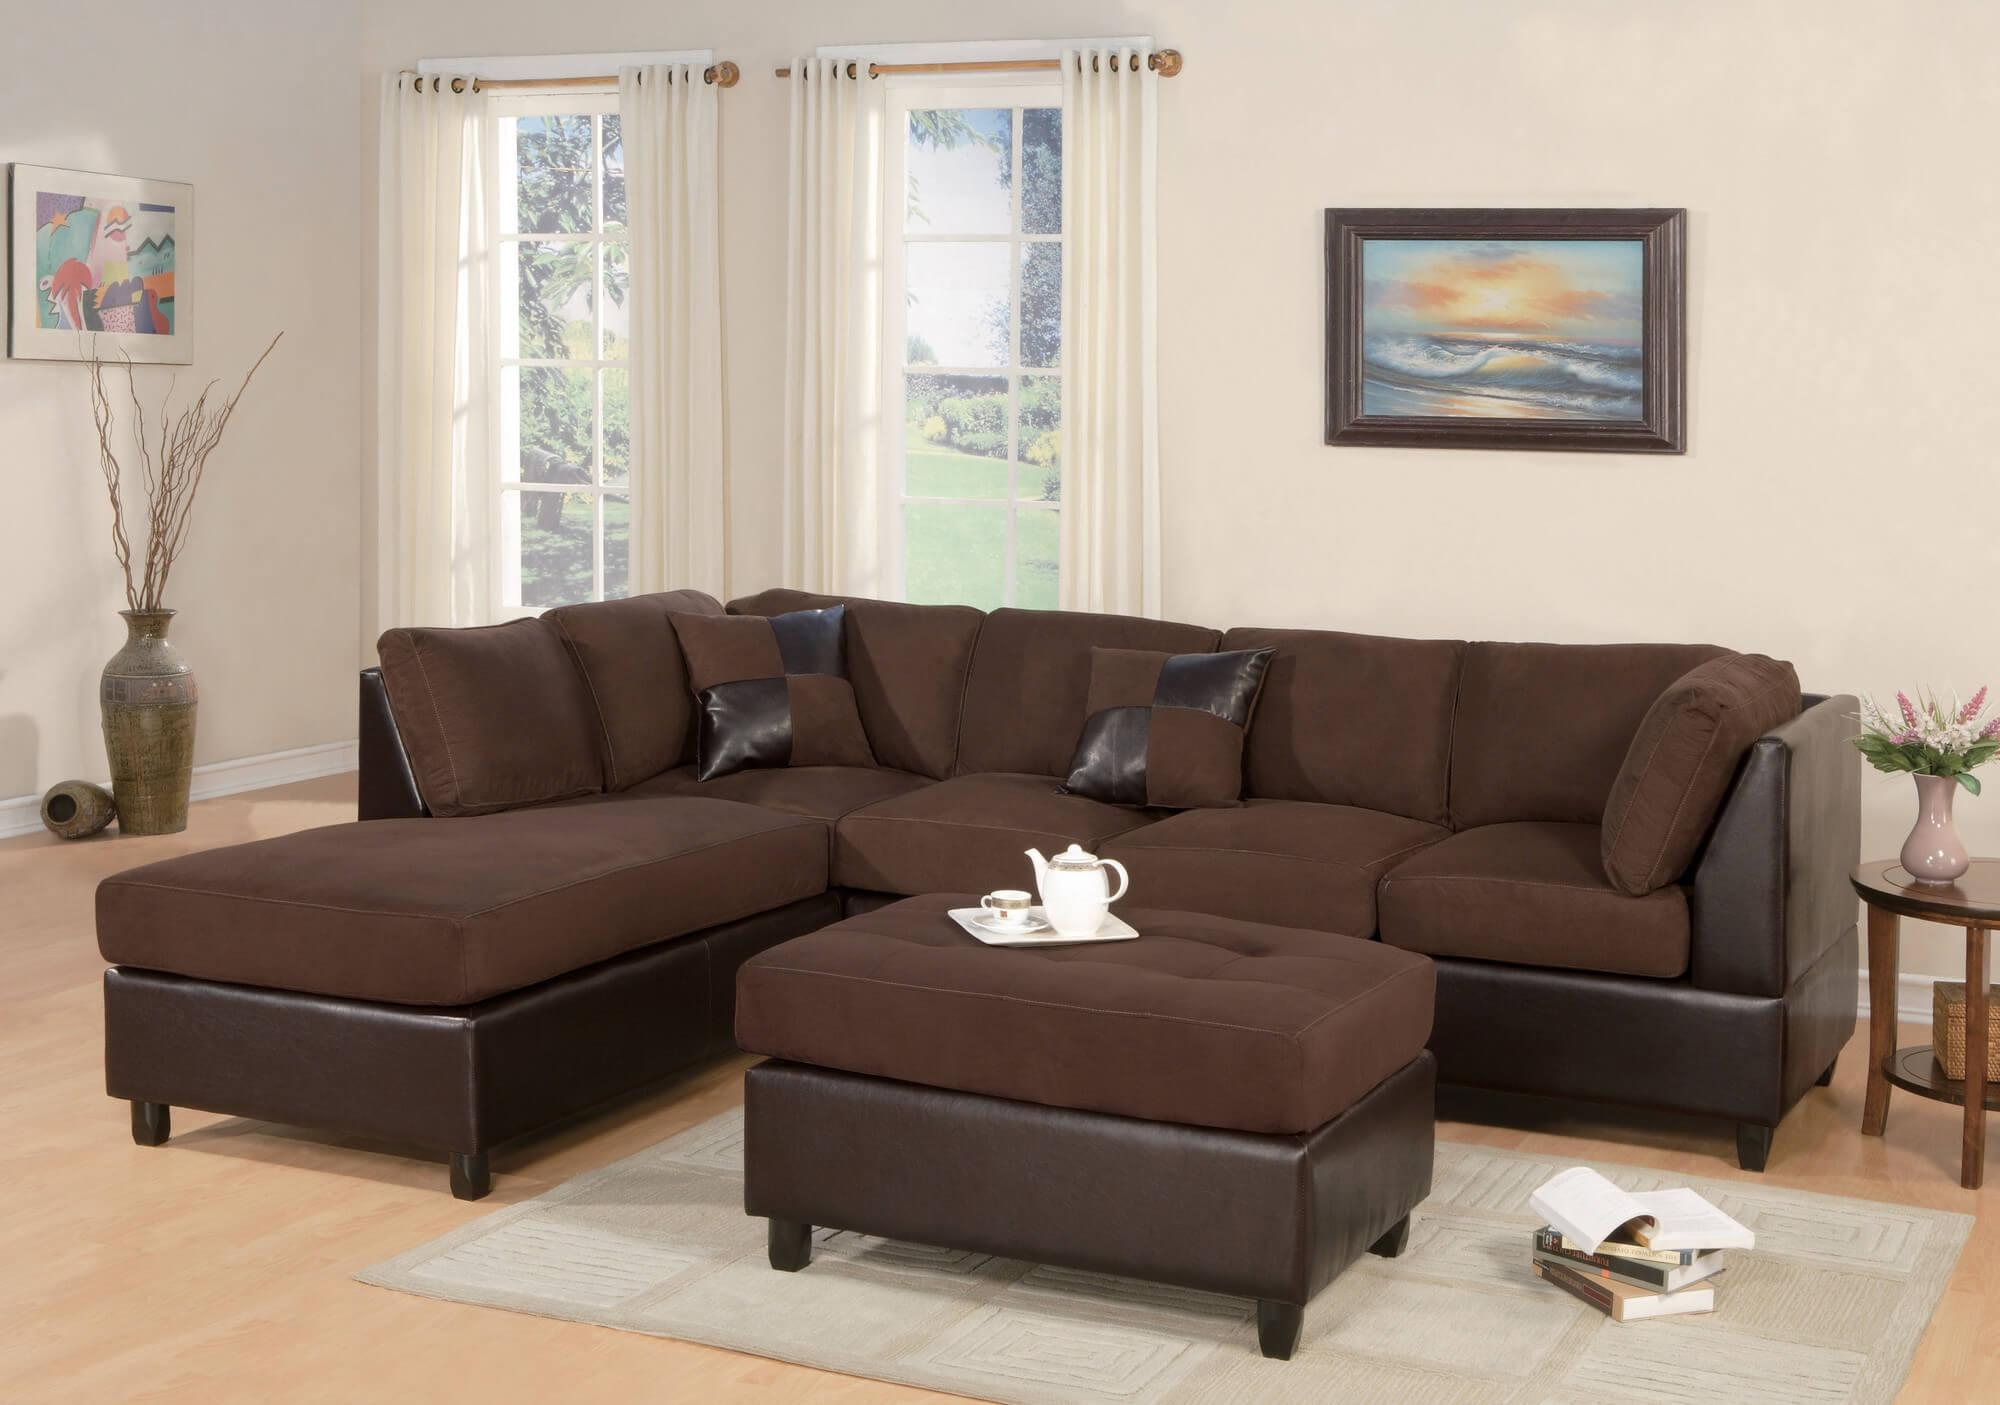 Sofas Center : Unusual Big Lots Sofa Images Design Couch Sleeper Regarding Big Lots Sofas (Image 18 of 20)